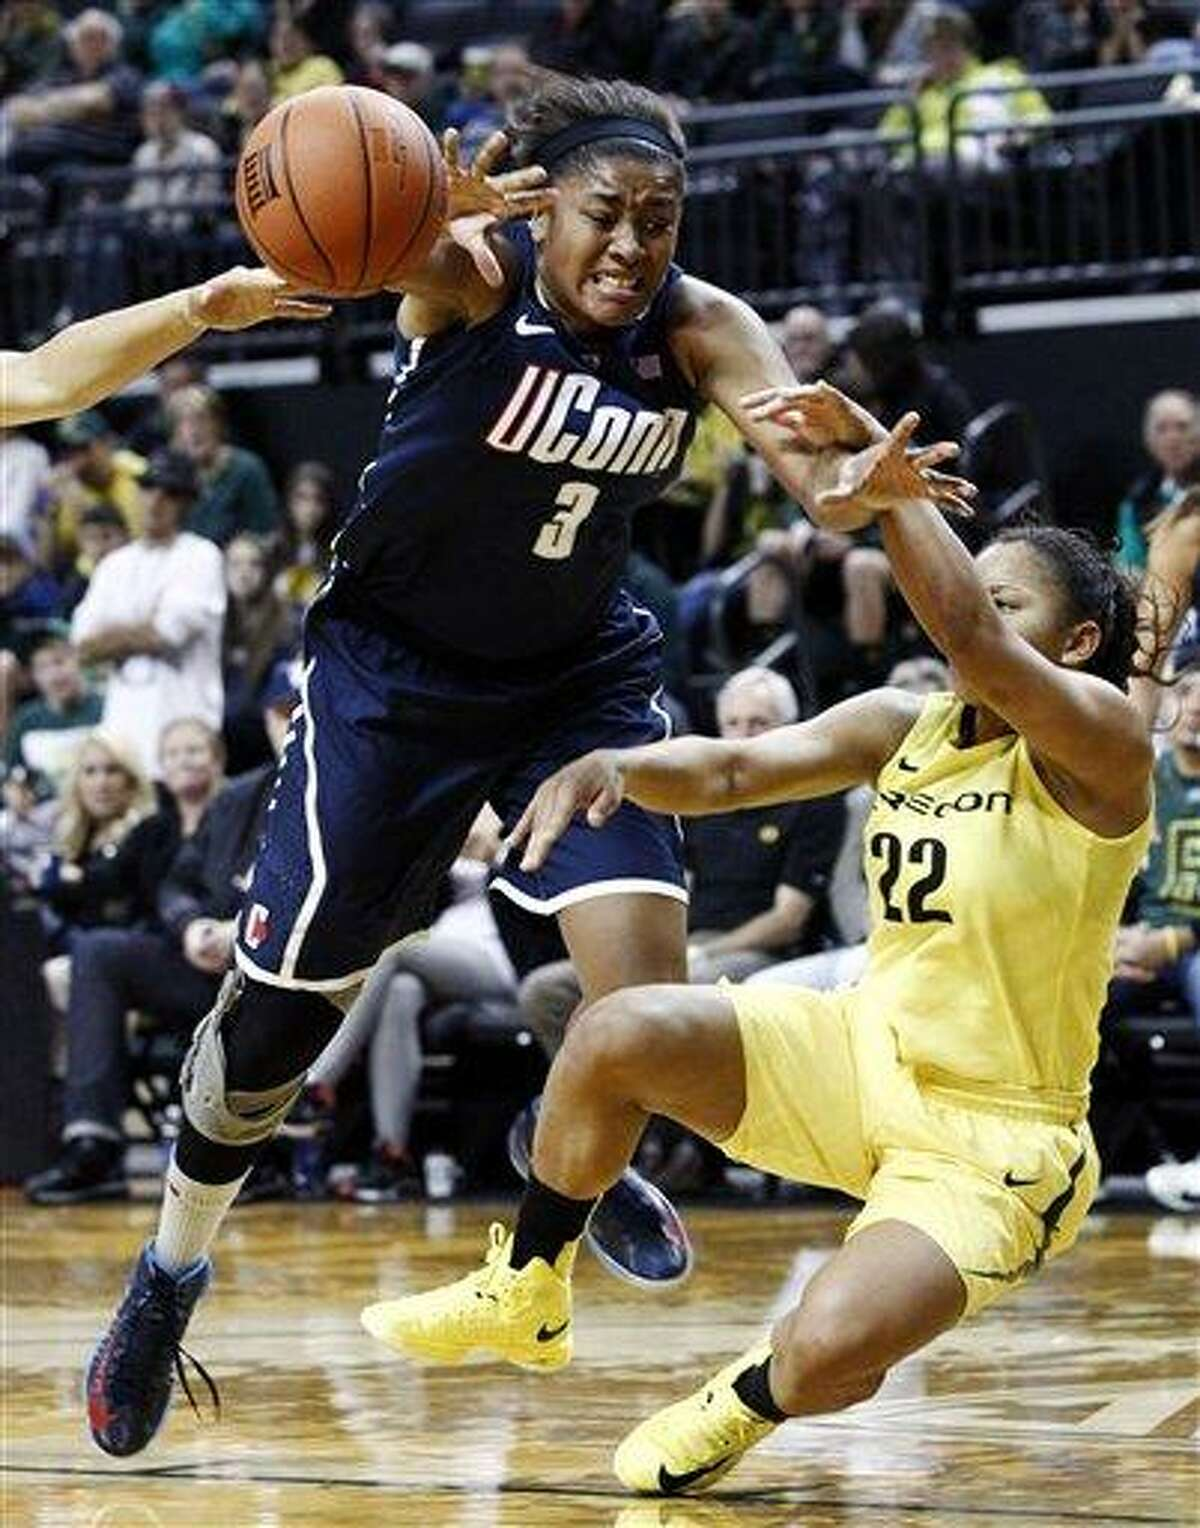 Connecticut forward Morgan Tuck, left, is fouled on her way to the basket by Oregon guard Ariel Thomas during the second half of an NCAA college basketball game in Eugene, Ore., Monday, Dec. 31, 2012. Connecticut won 95-51. (AP Photo/Don Ryan)